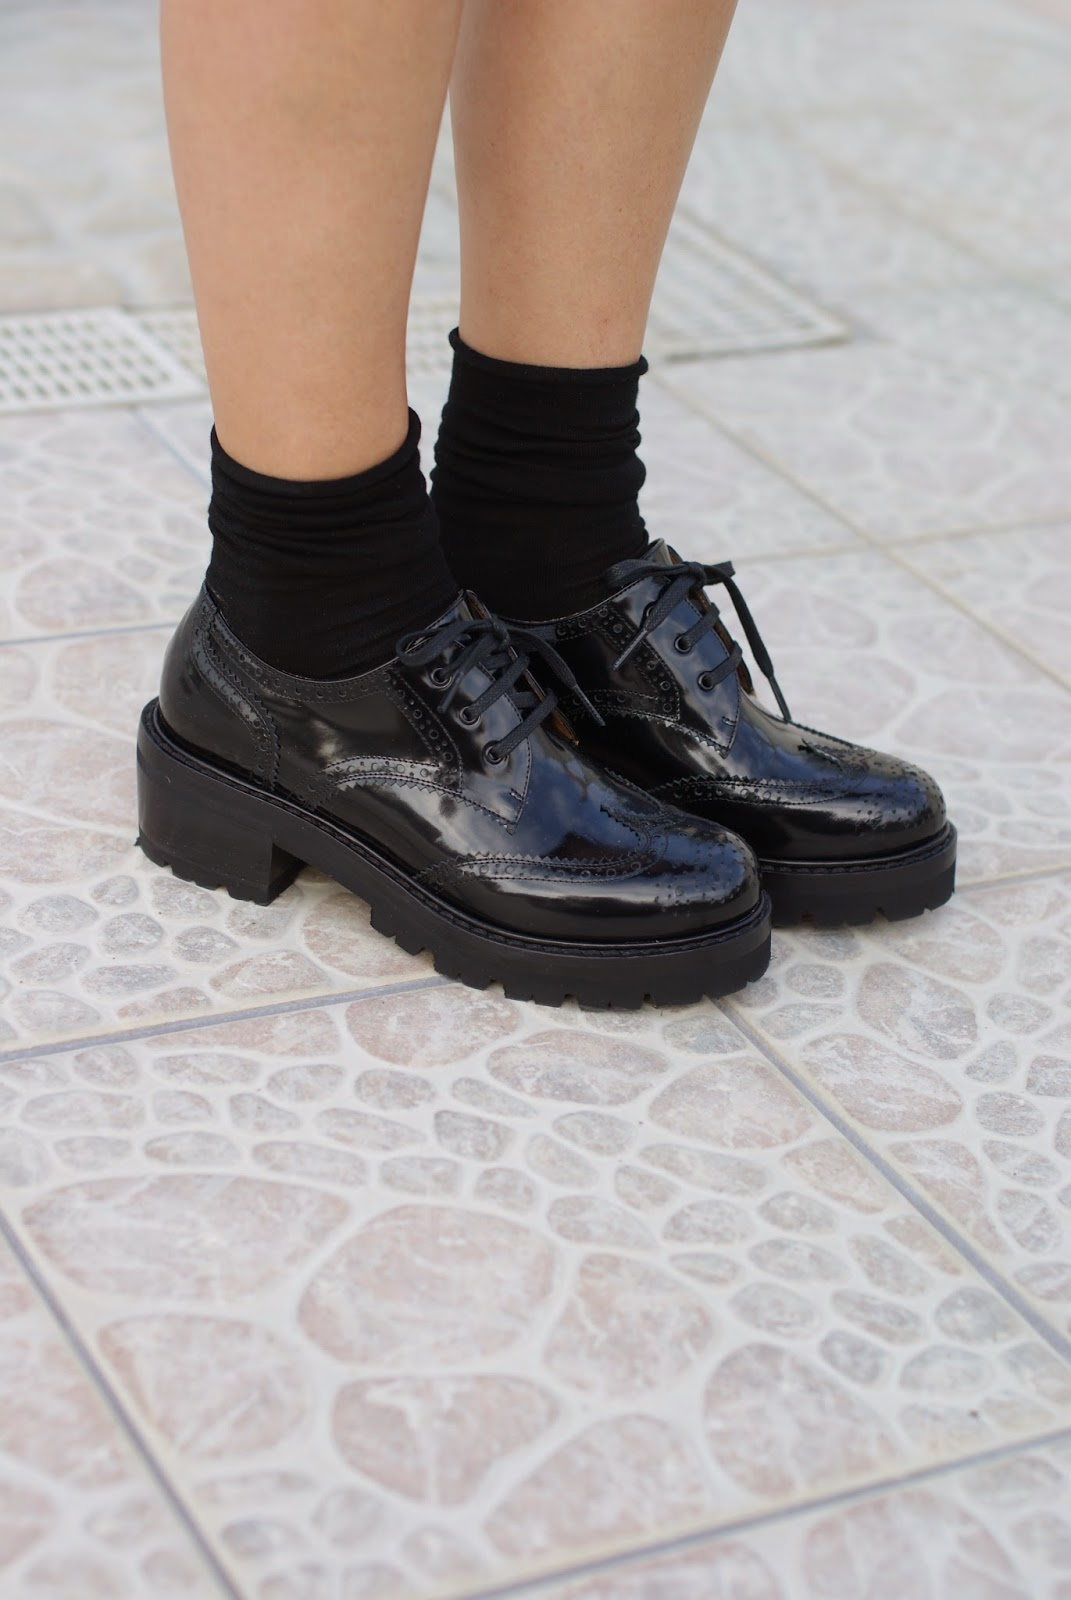 Nando Muzi brogues, patent leather brogues, Fashion and Cookies, fashion blogger